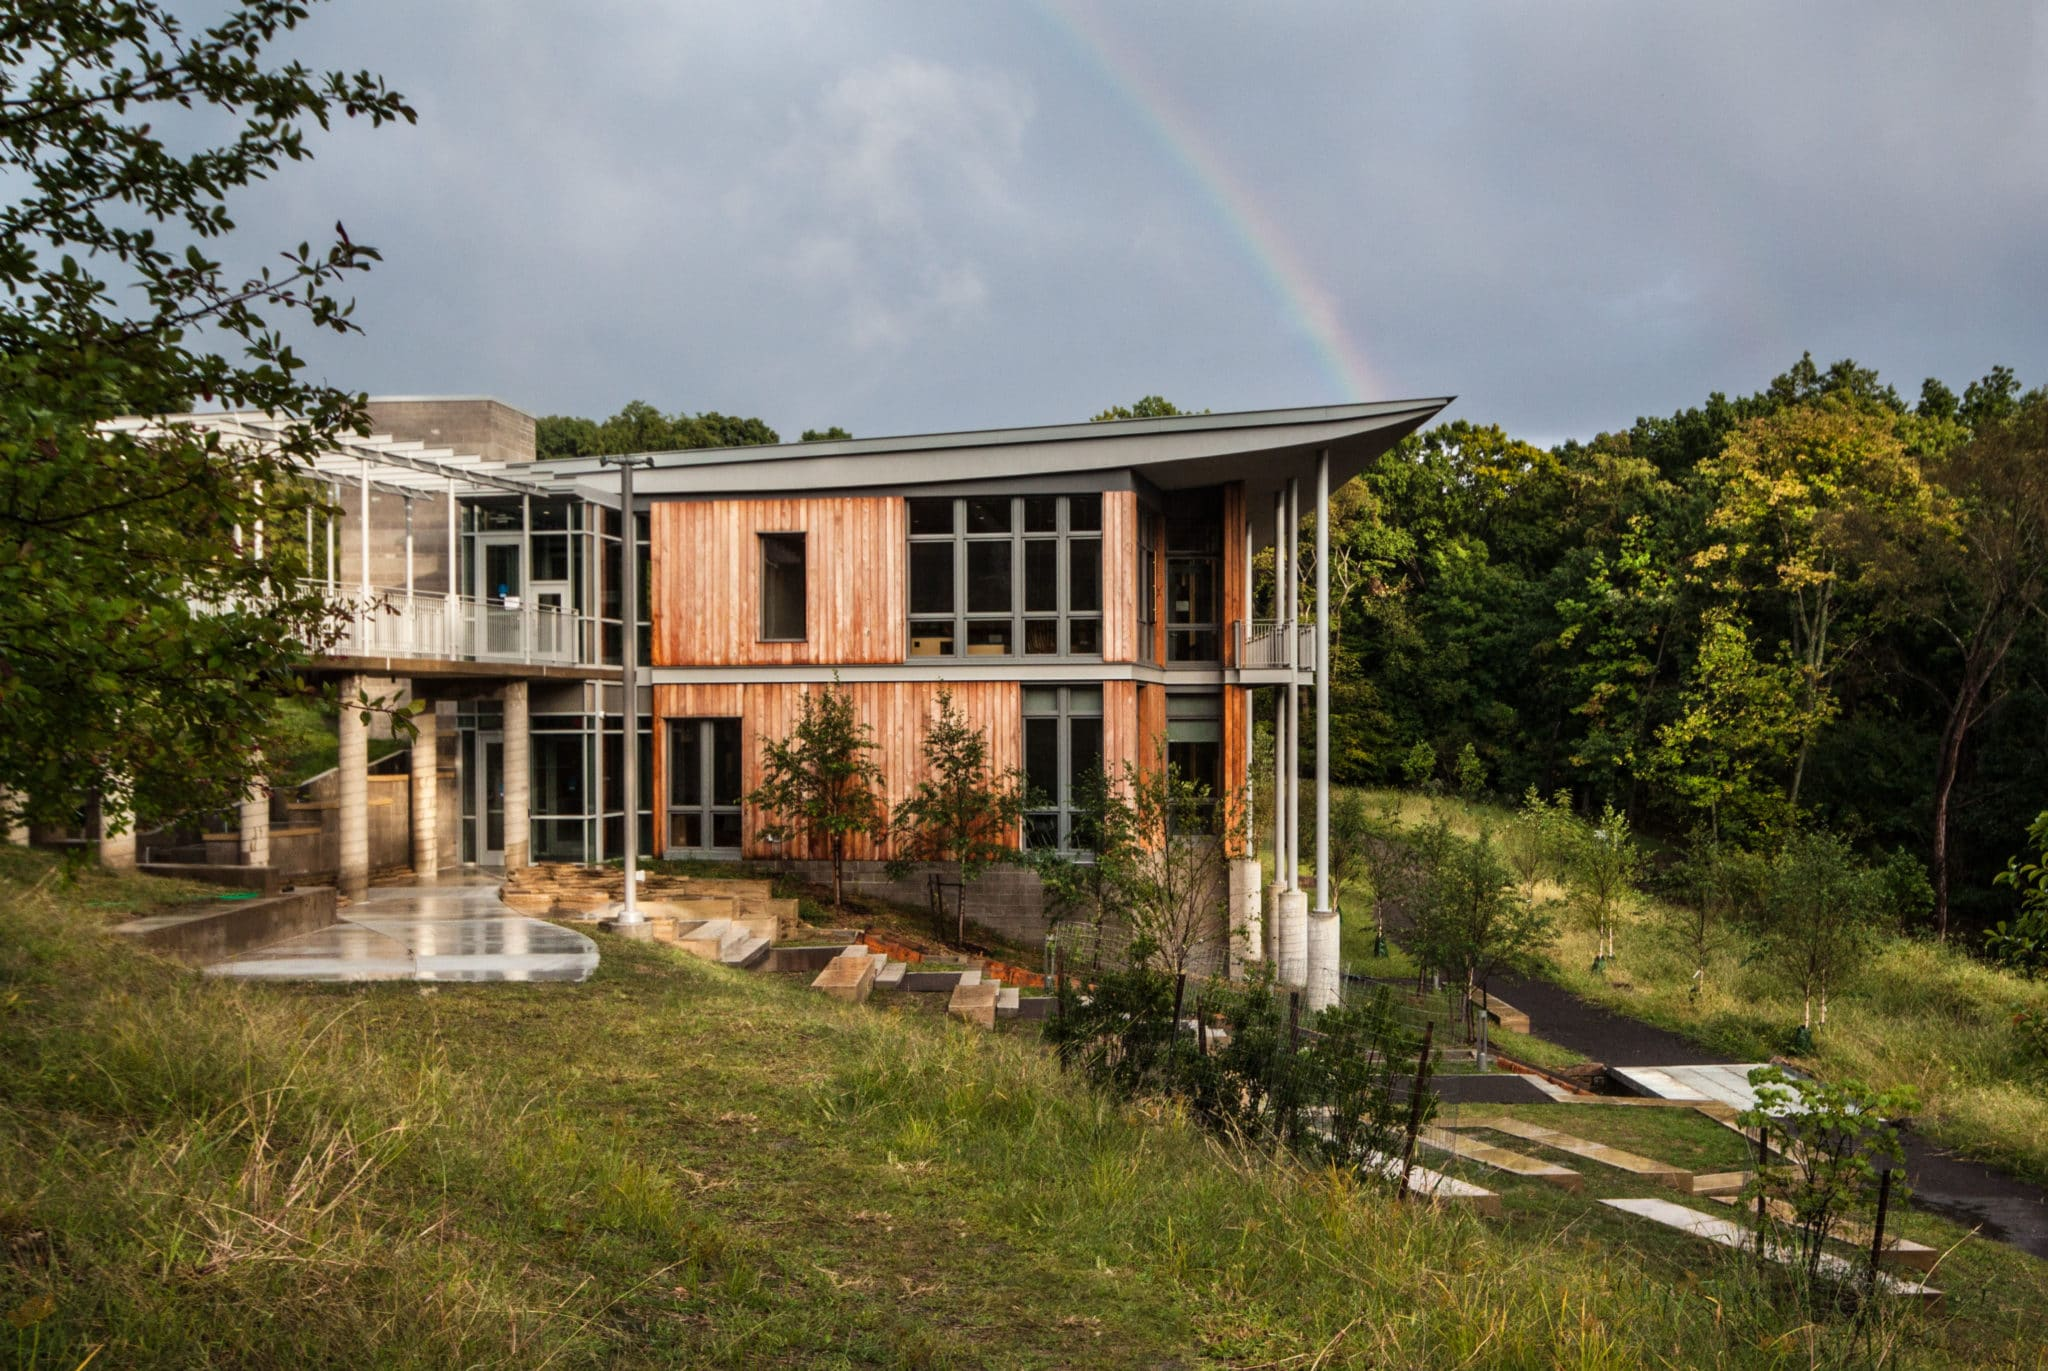 Frick Environmental Center with a rainbow behind it